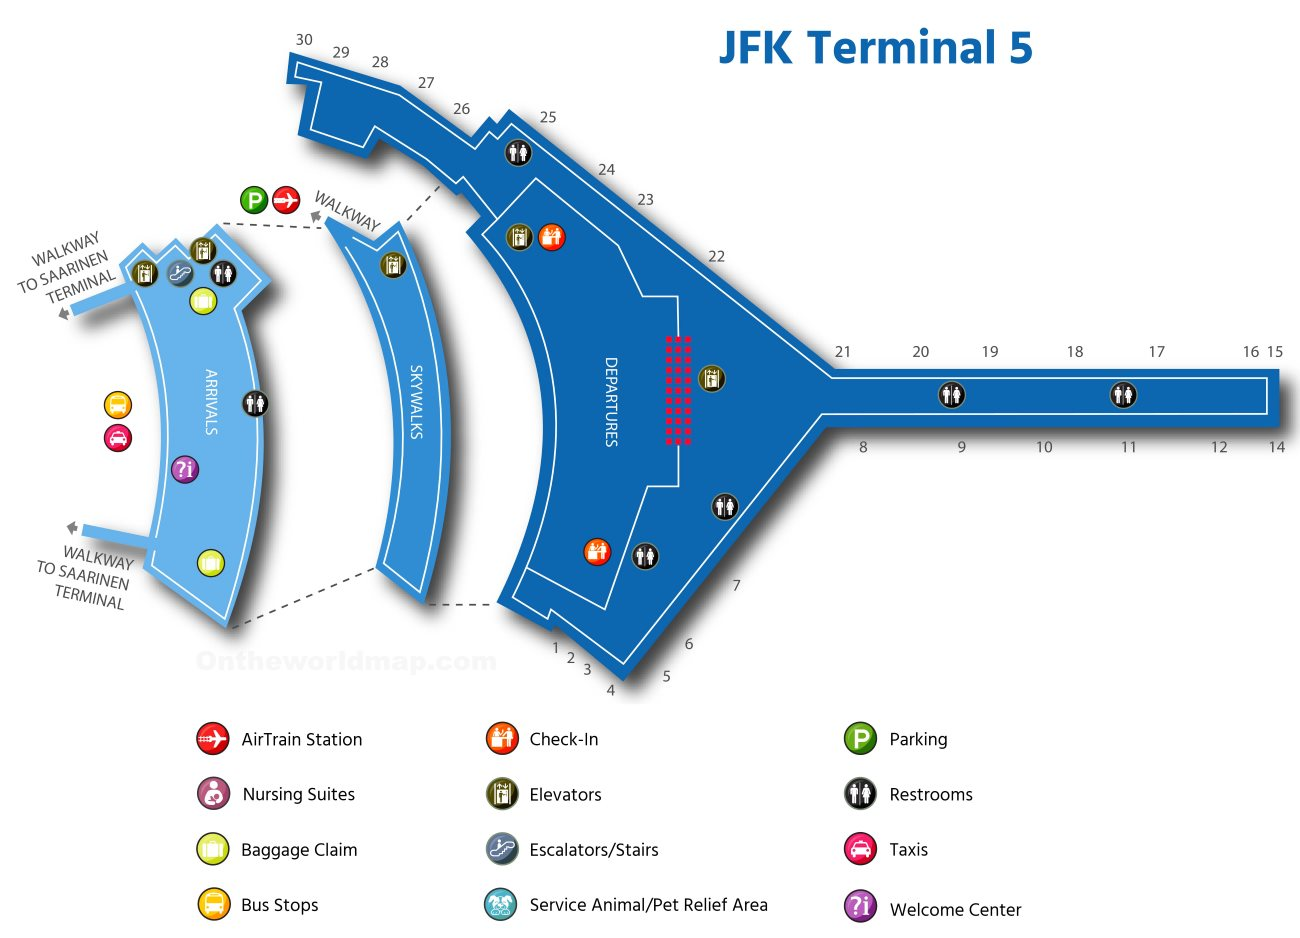 Map Of New York Showing Jfk Airport.Jfk Airport Terminal 5 Map